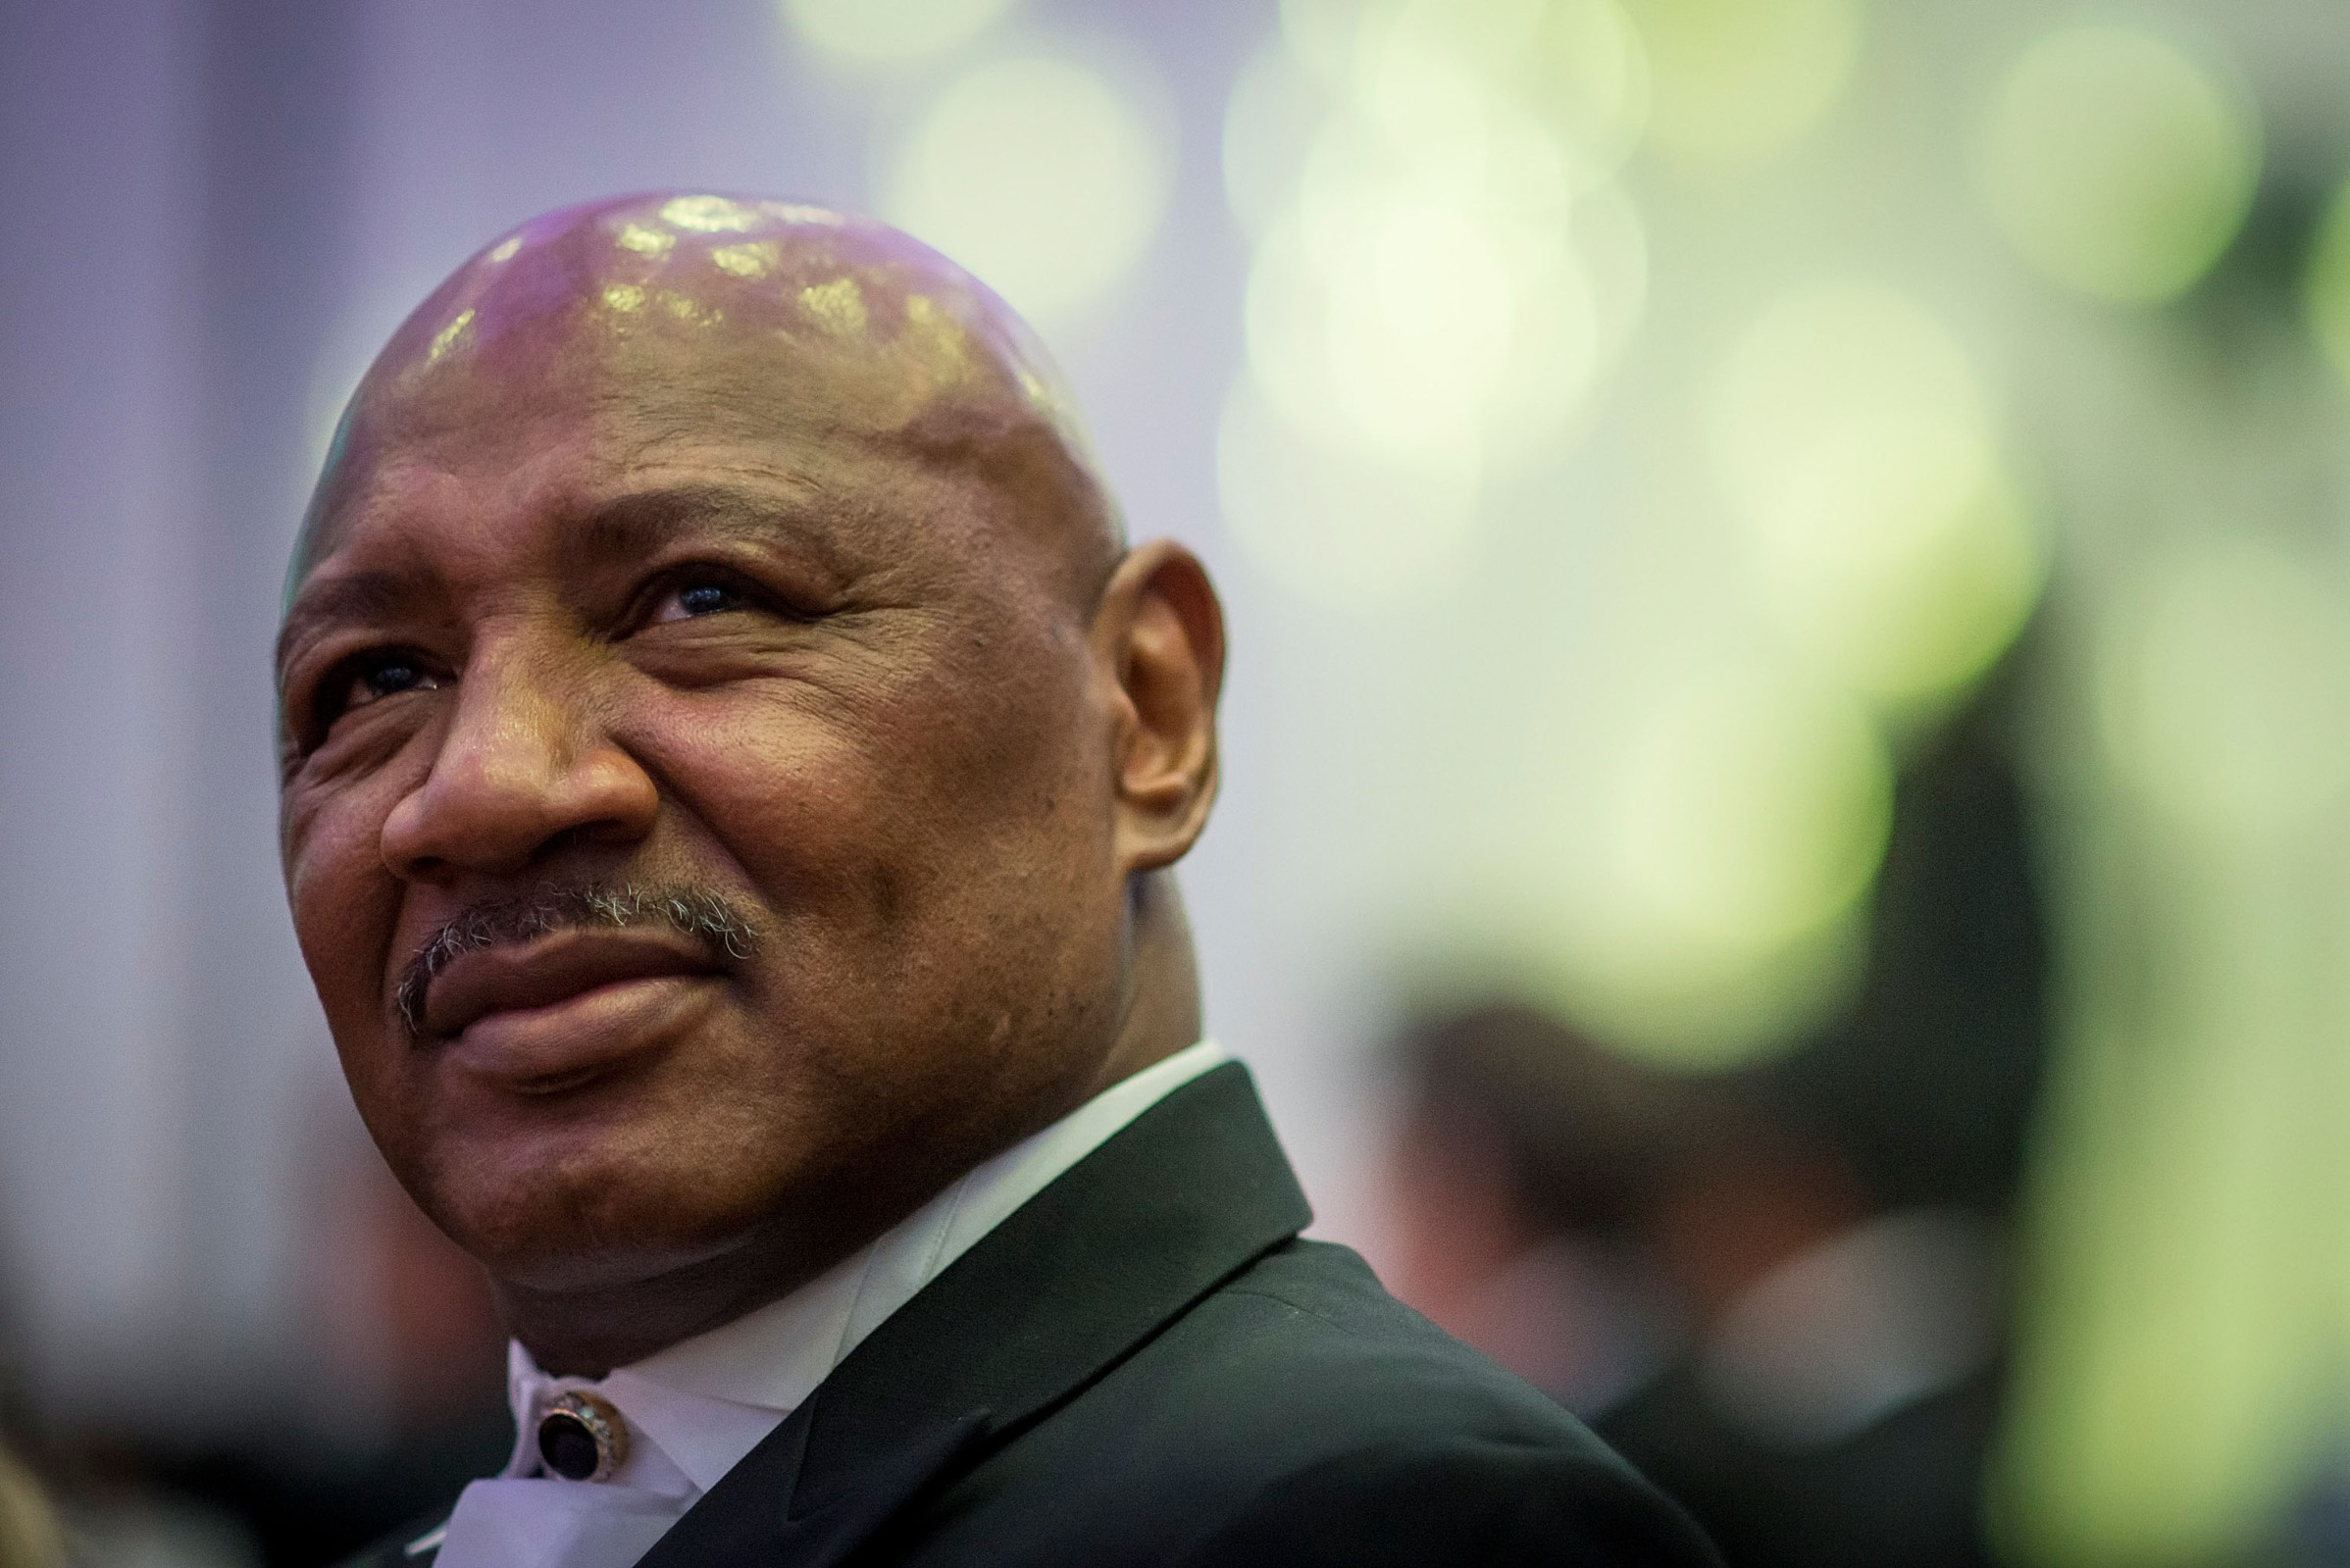 Marvin Hagler at a fundraising event in 2006.